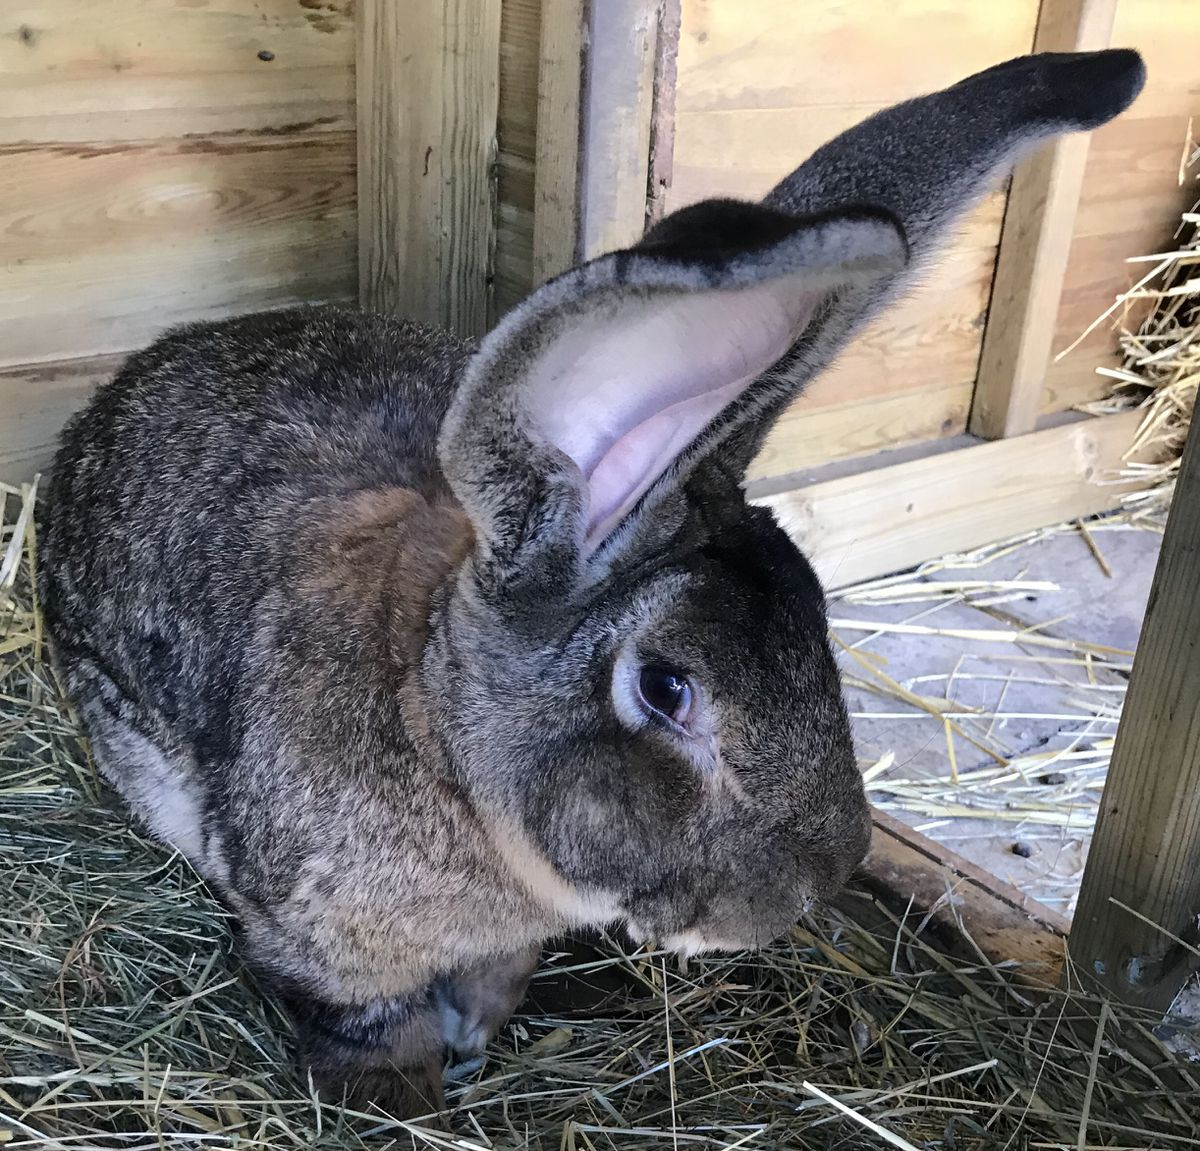 Darius, the world's largest rabbit, has been stolen from his home